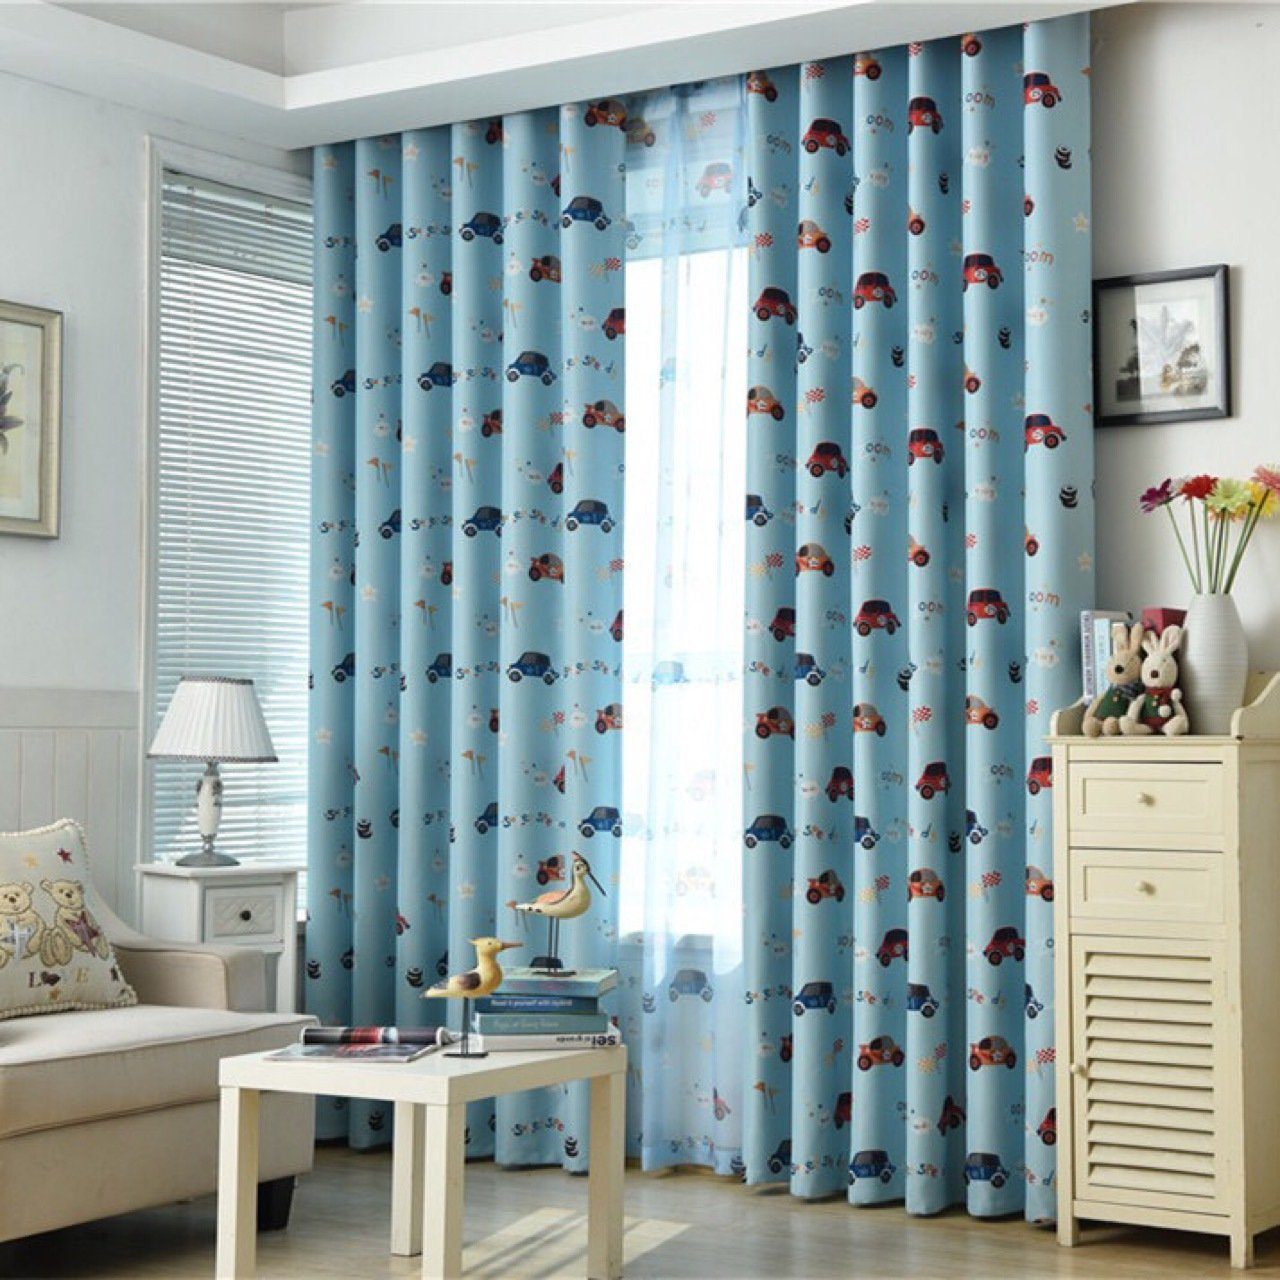 TIYANA Cartoon Print Cloth Curtains Metal Grommet Thermal Insulated Semi Blackout Curtain Panel for Boys Bedroom 96 inches long, 1 Piece, Cartoon Cars, Blue